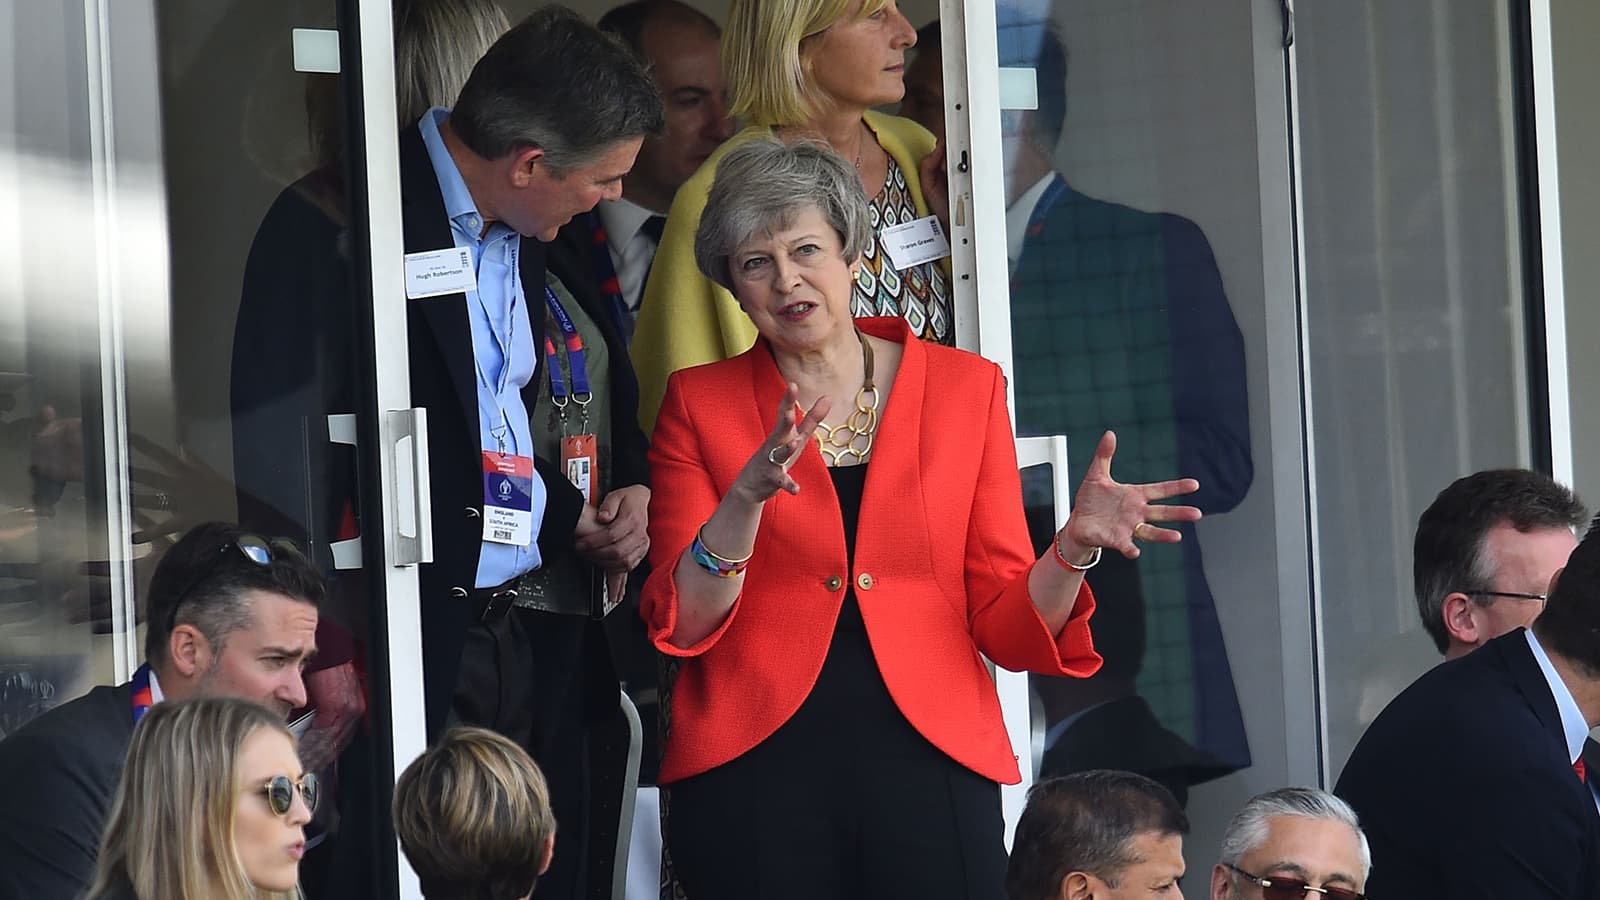 Britain Prime Minister Theresa May attends during the 2019 Cricket World Cup group stage match between England and South Africa at The Oval in London on May 30. — AFP